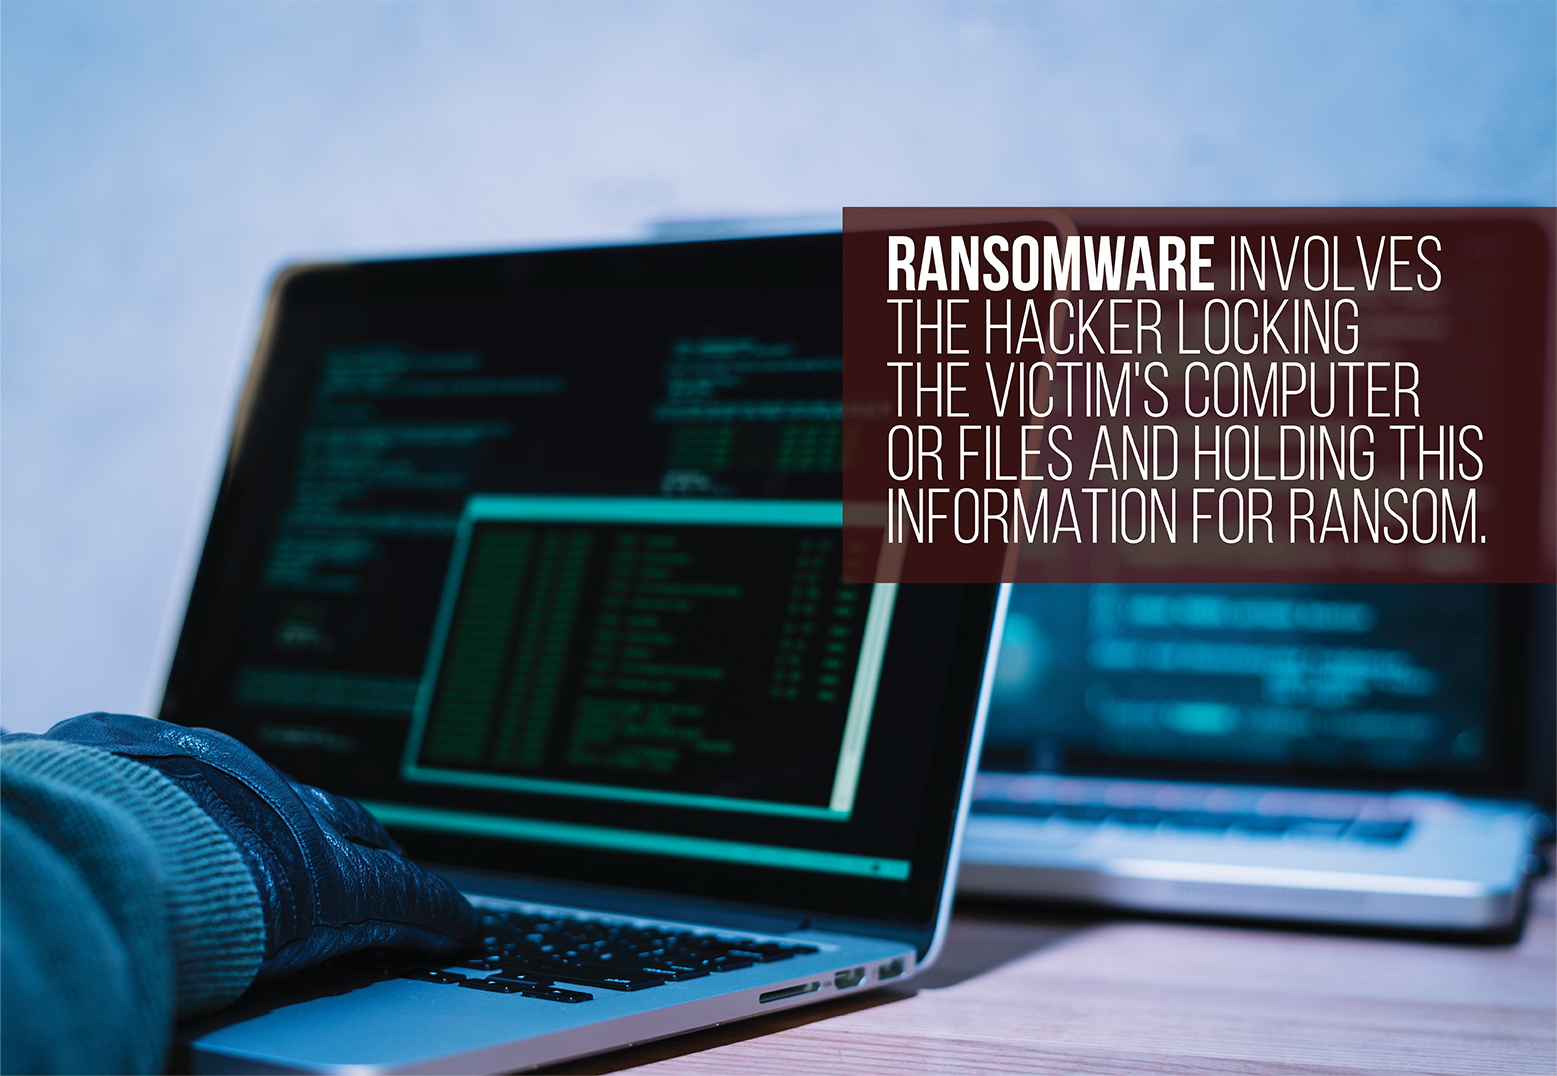 ransomware is a hacker locking a victim's computer or files for a ransom